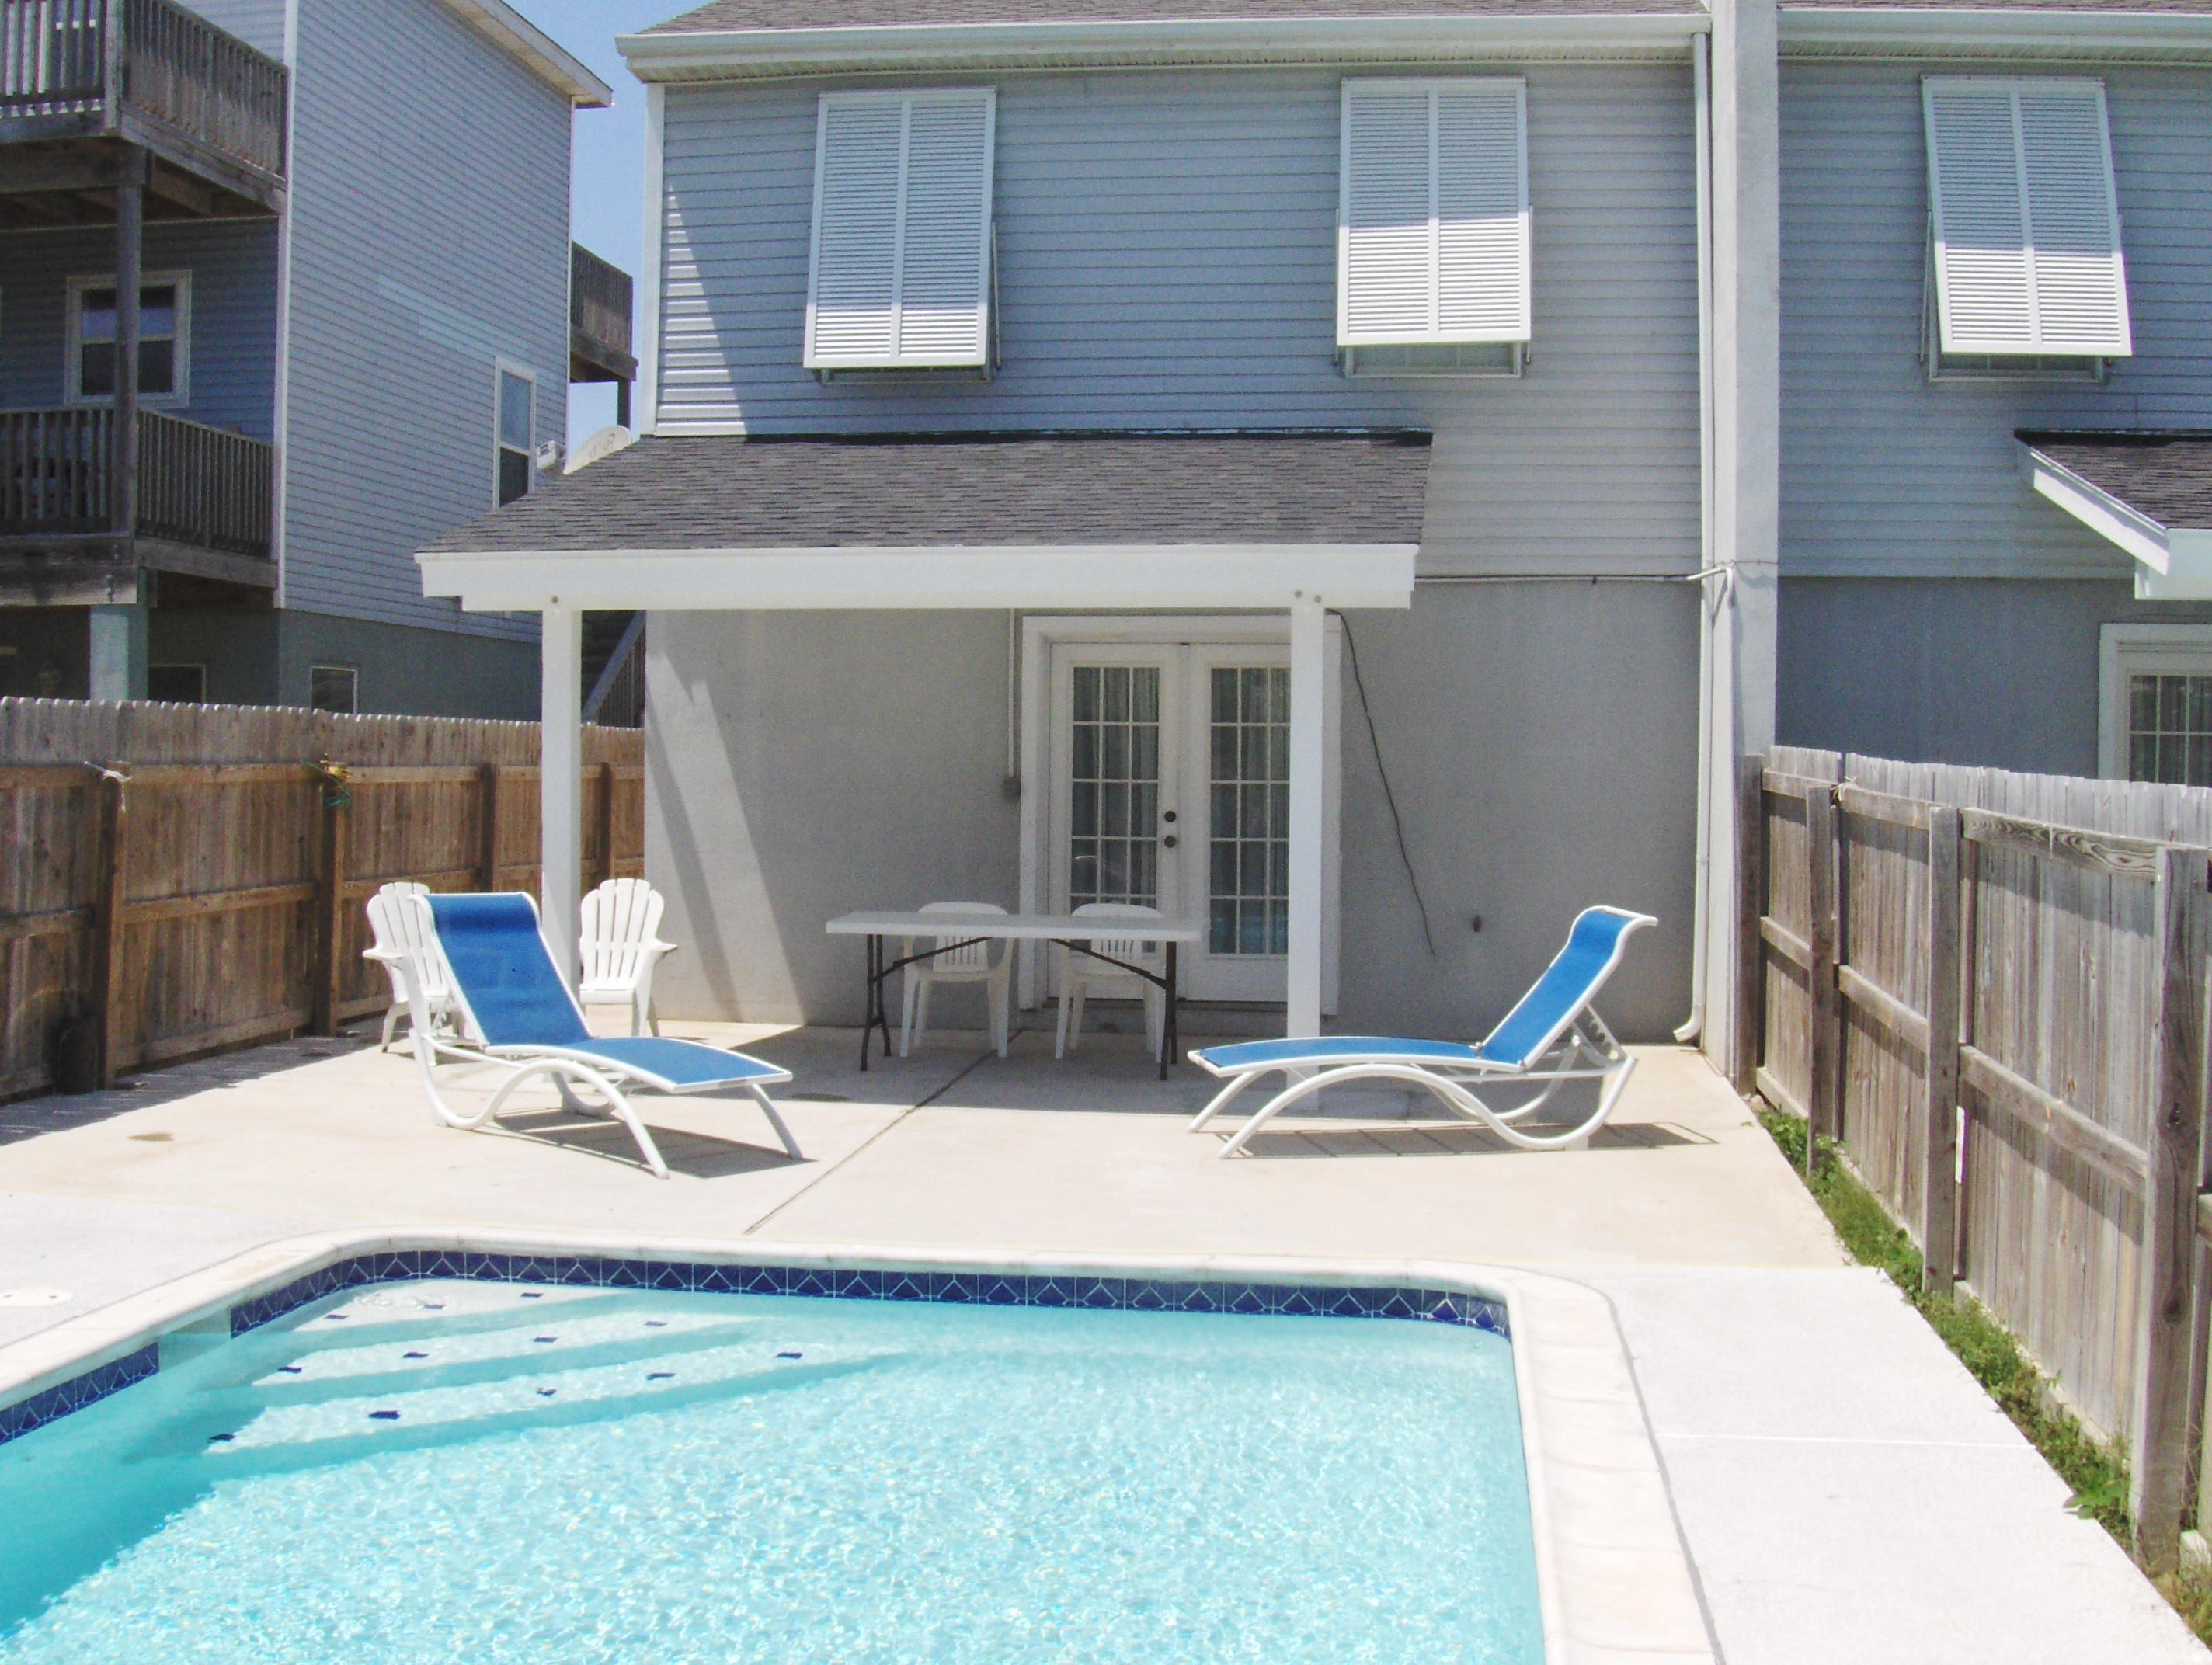 Unit A - Private Pool Backyard.jpg